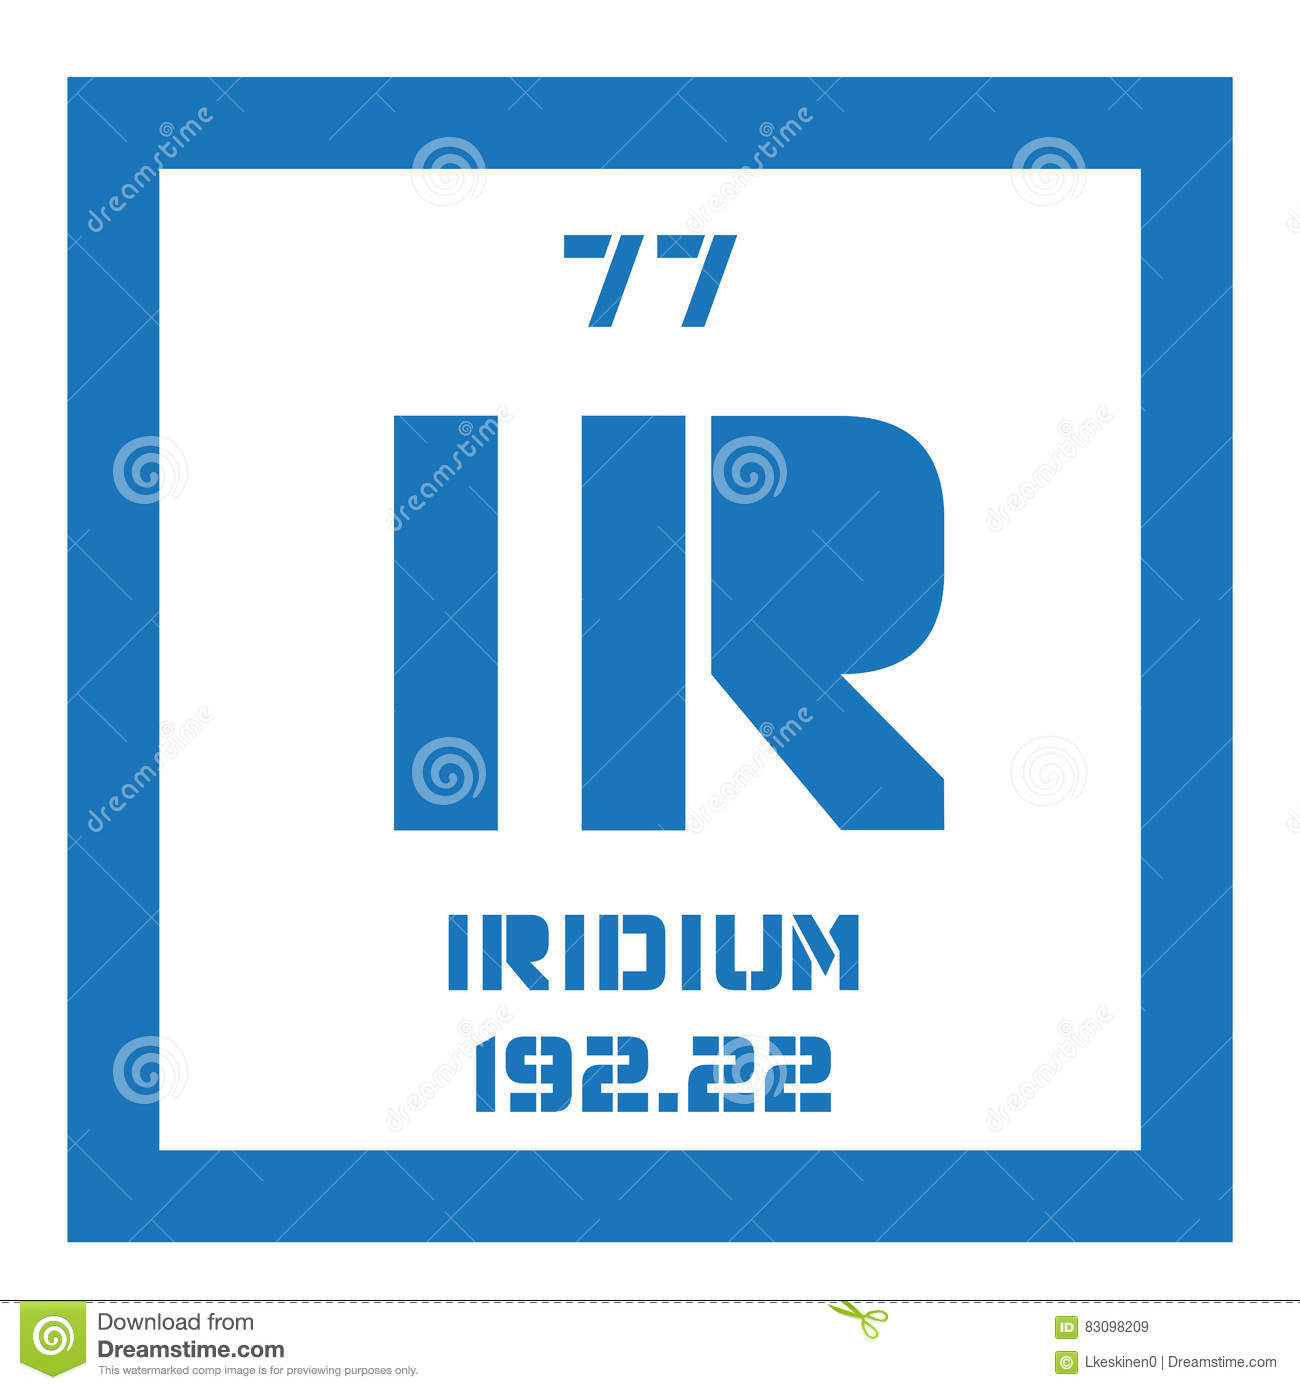 Iridium Chemical Element Stock Vector Illustration Of Fundamental